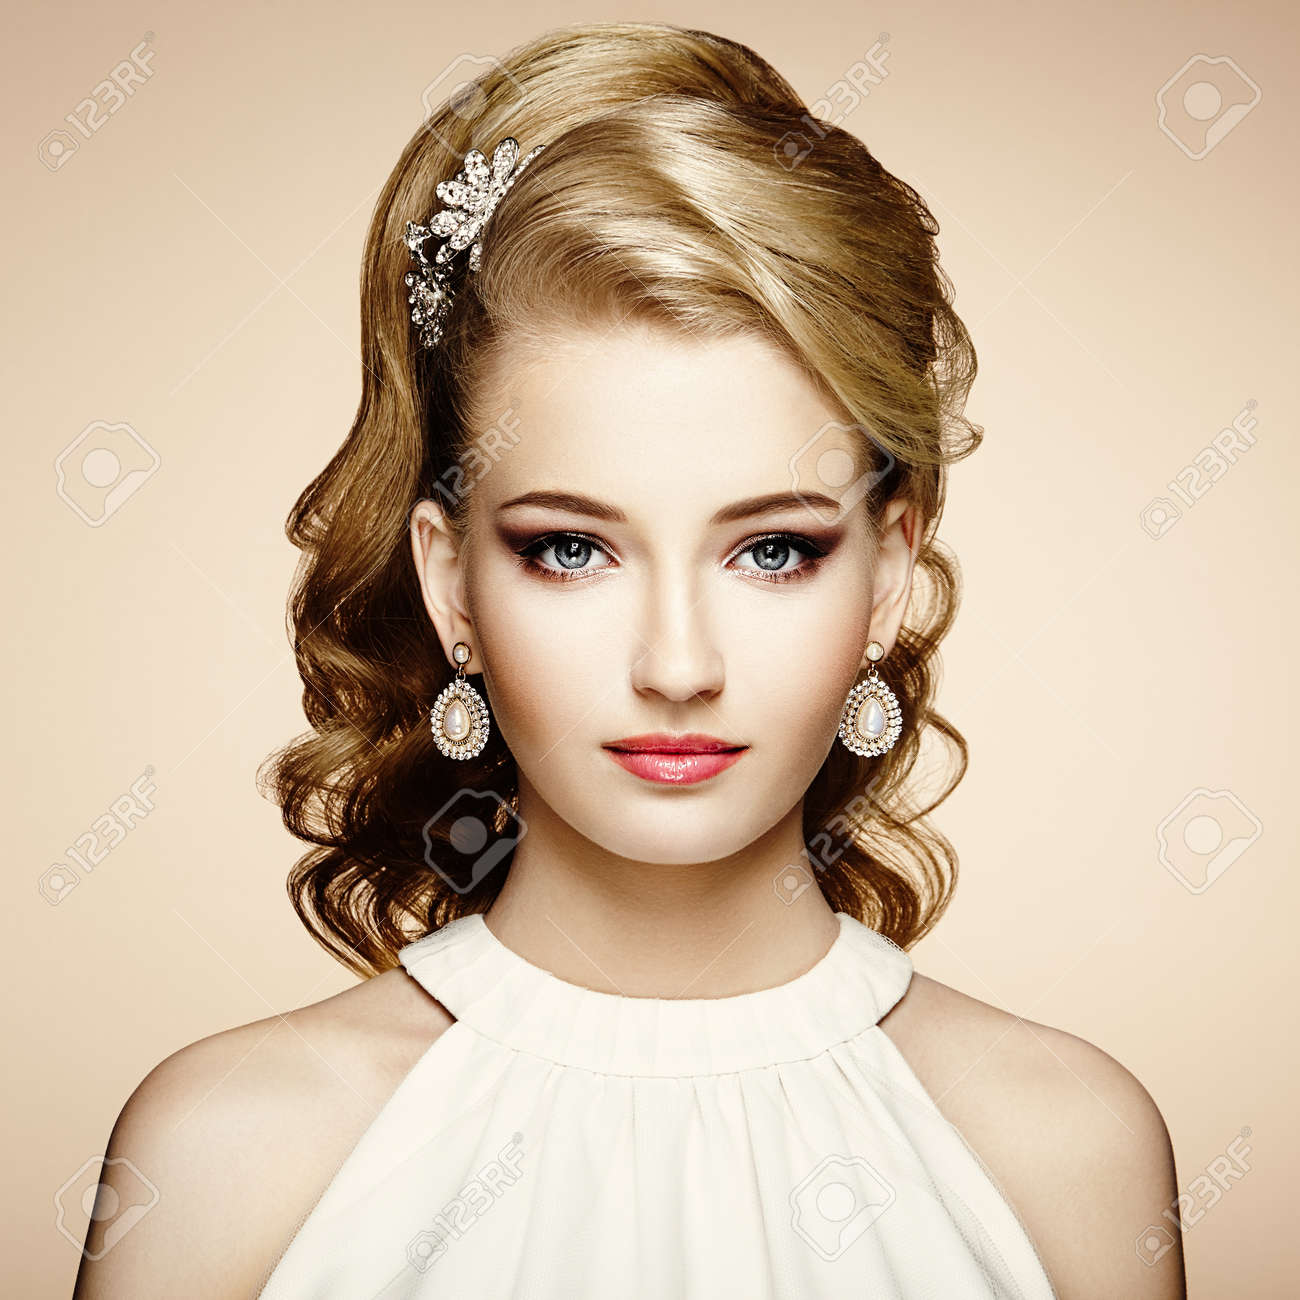 Fashion portrait of young beautiful woman with jewelry and elegant hairstyle. Blonde girl with long wavy hair. Perfect make-up. Beauty style woman with diamond accessories - 65966314